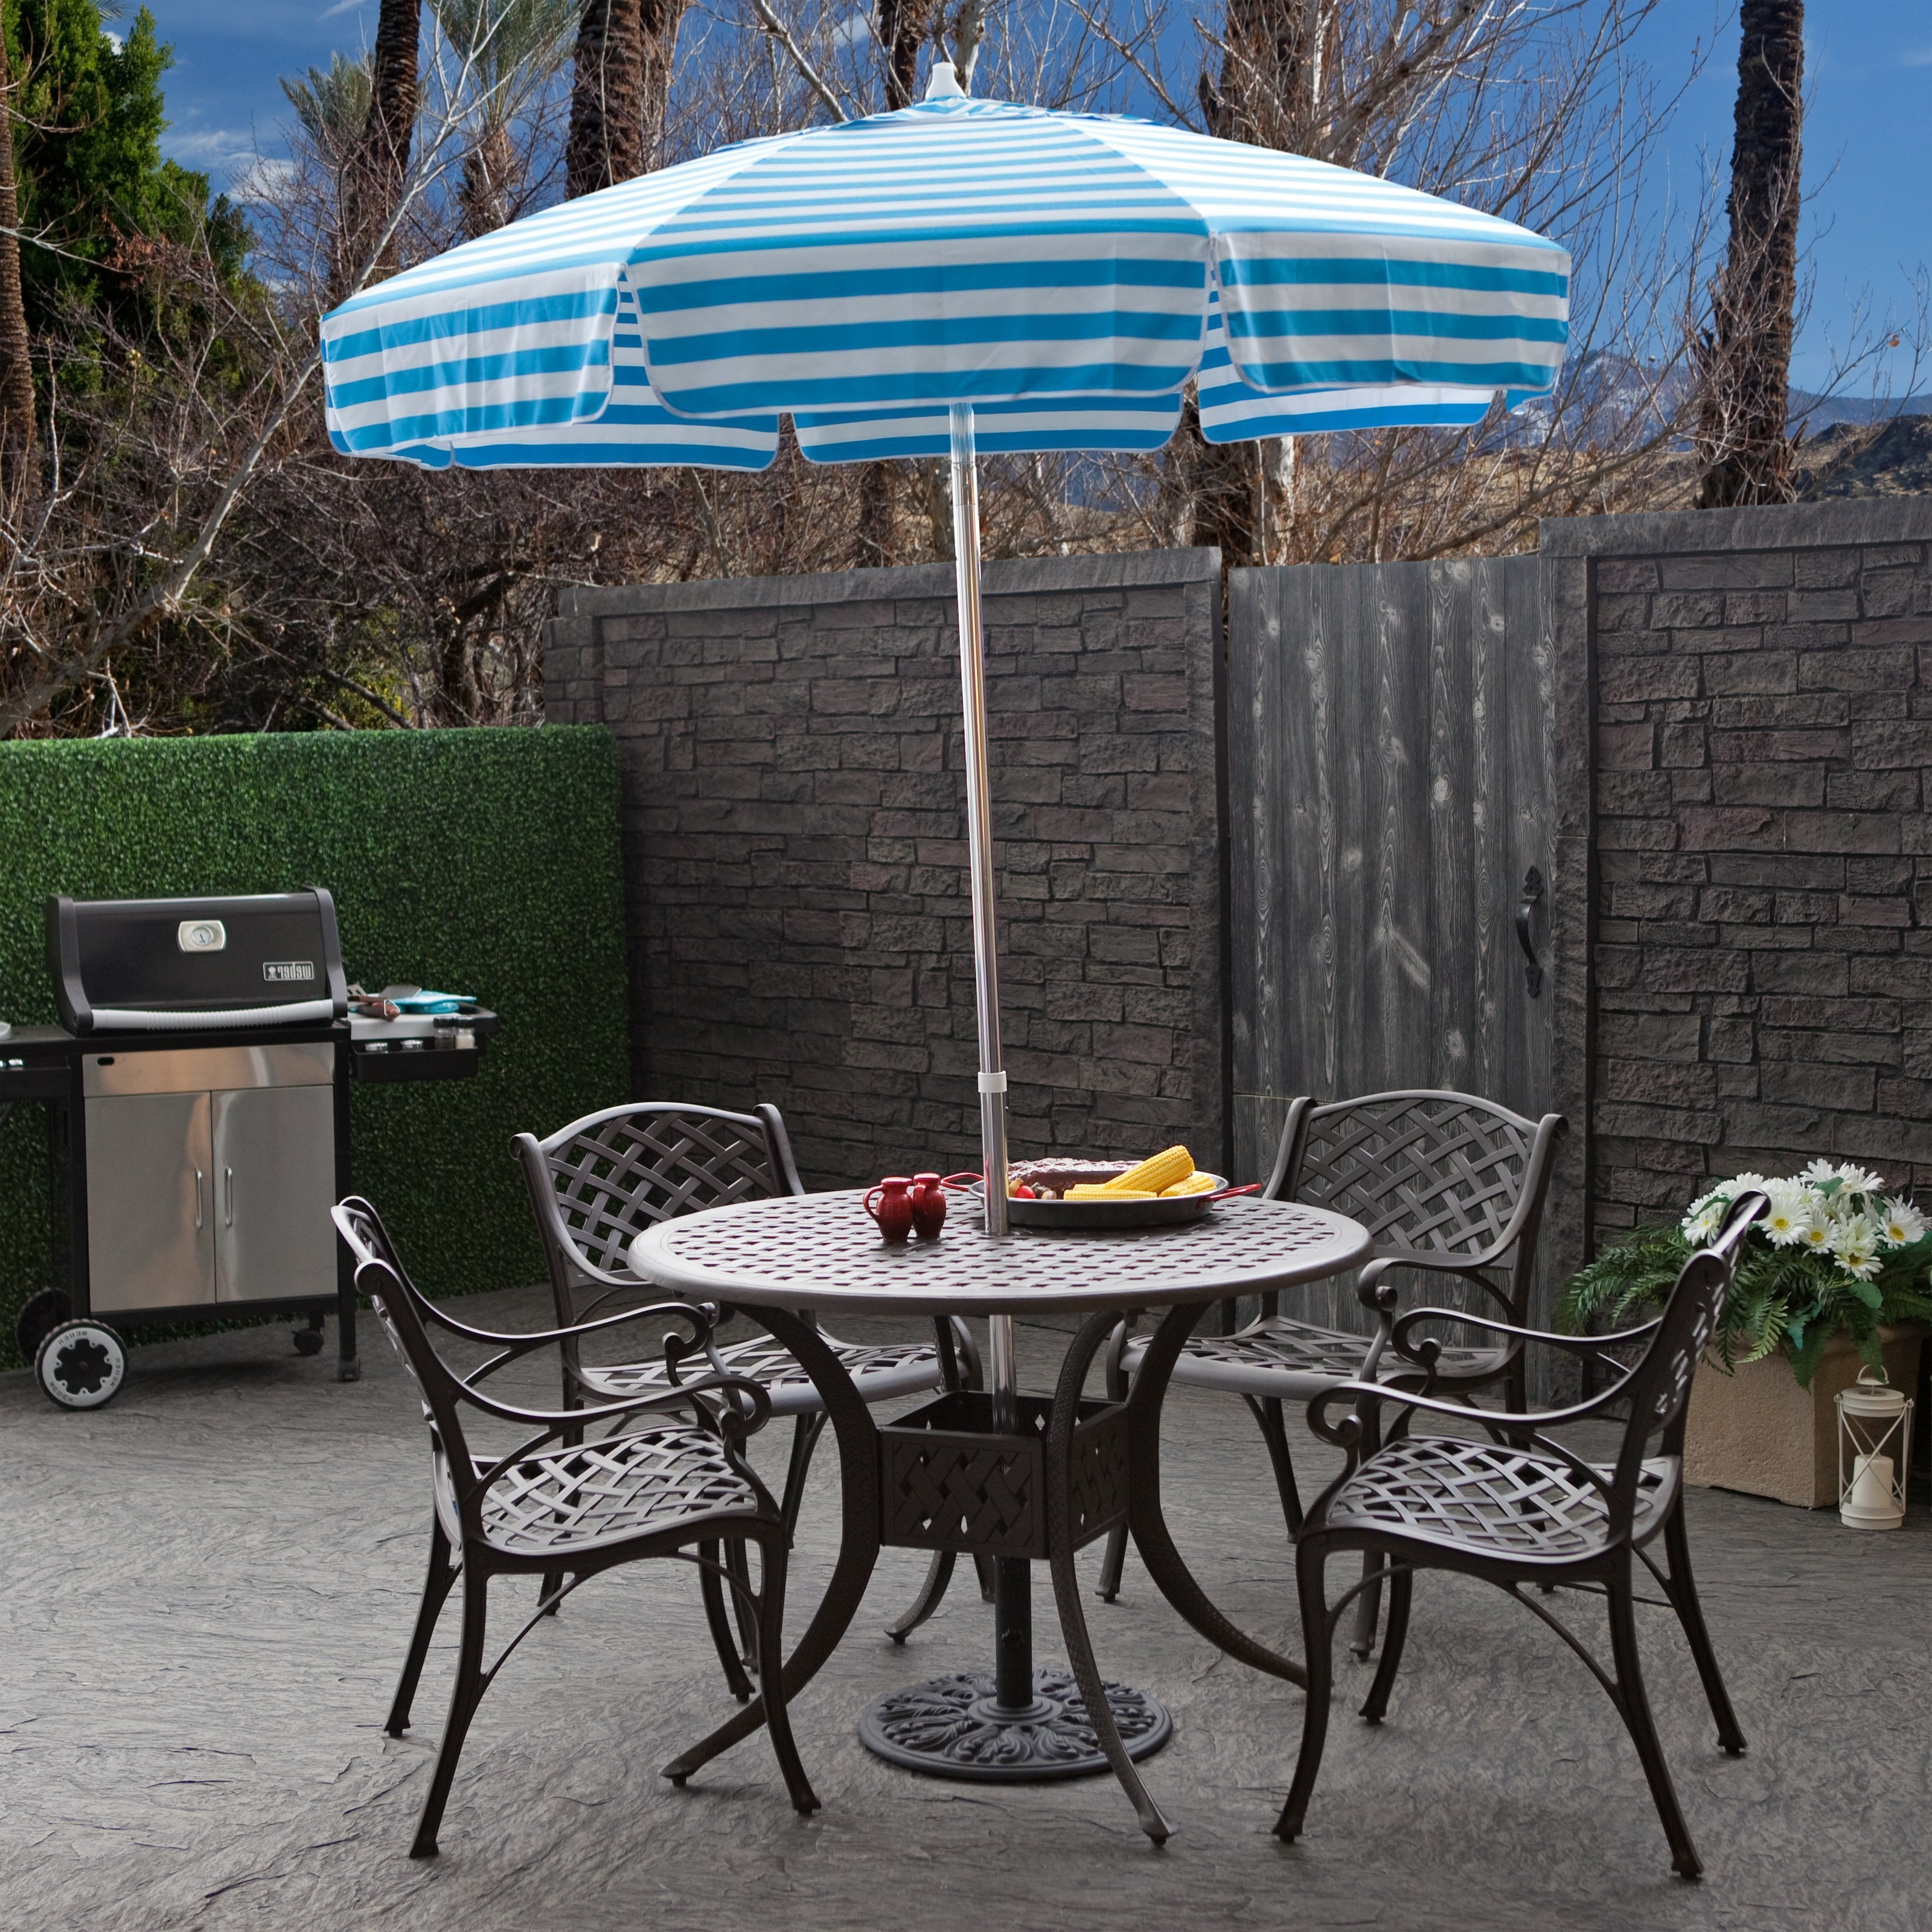 Small Patio Tables With Umbrellas With Current Incredible Patio Table Umbrellas Destinationgear 6 Ft Aluminum (View 7 of 20)